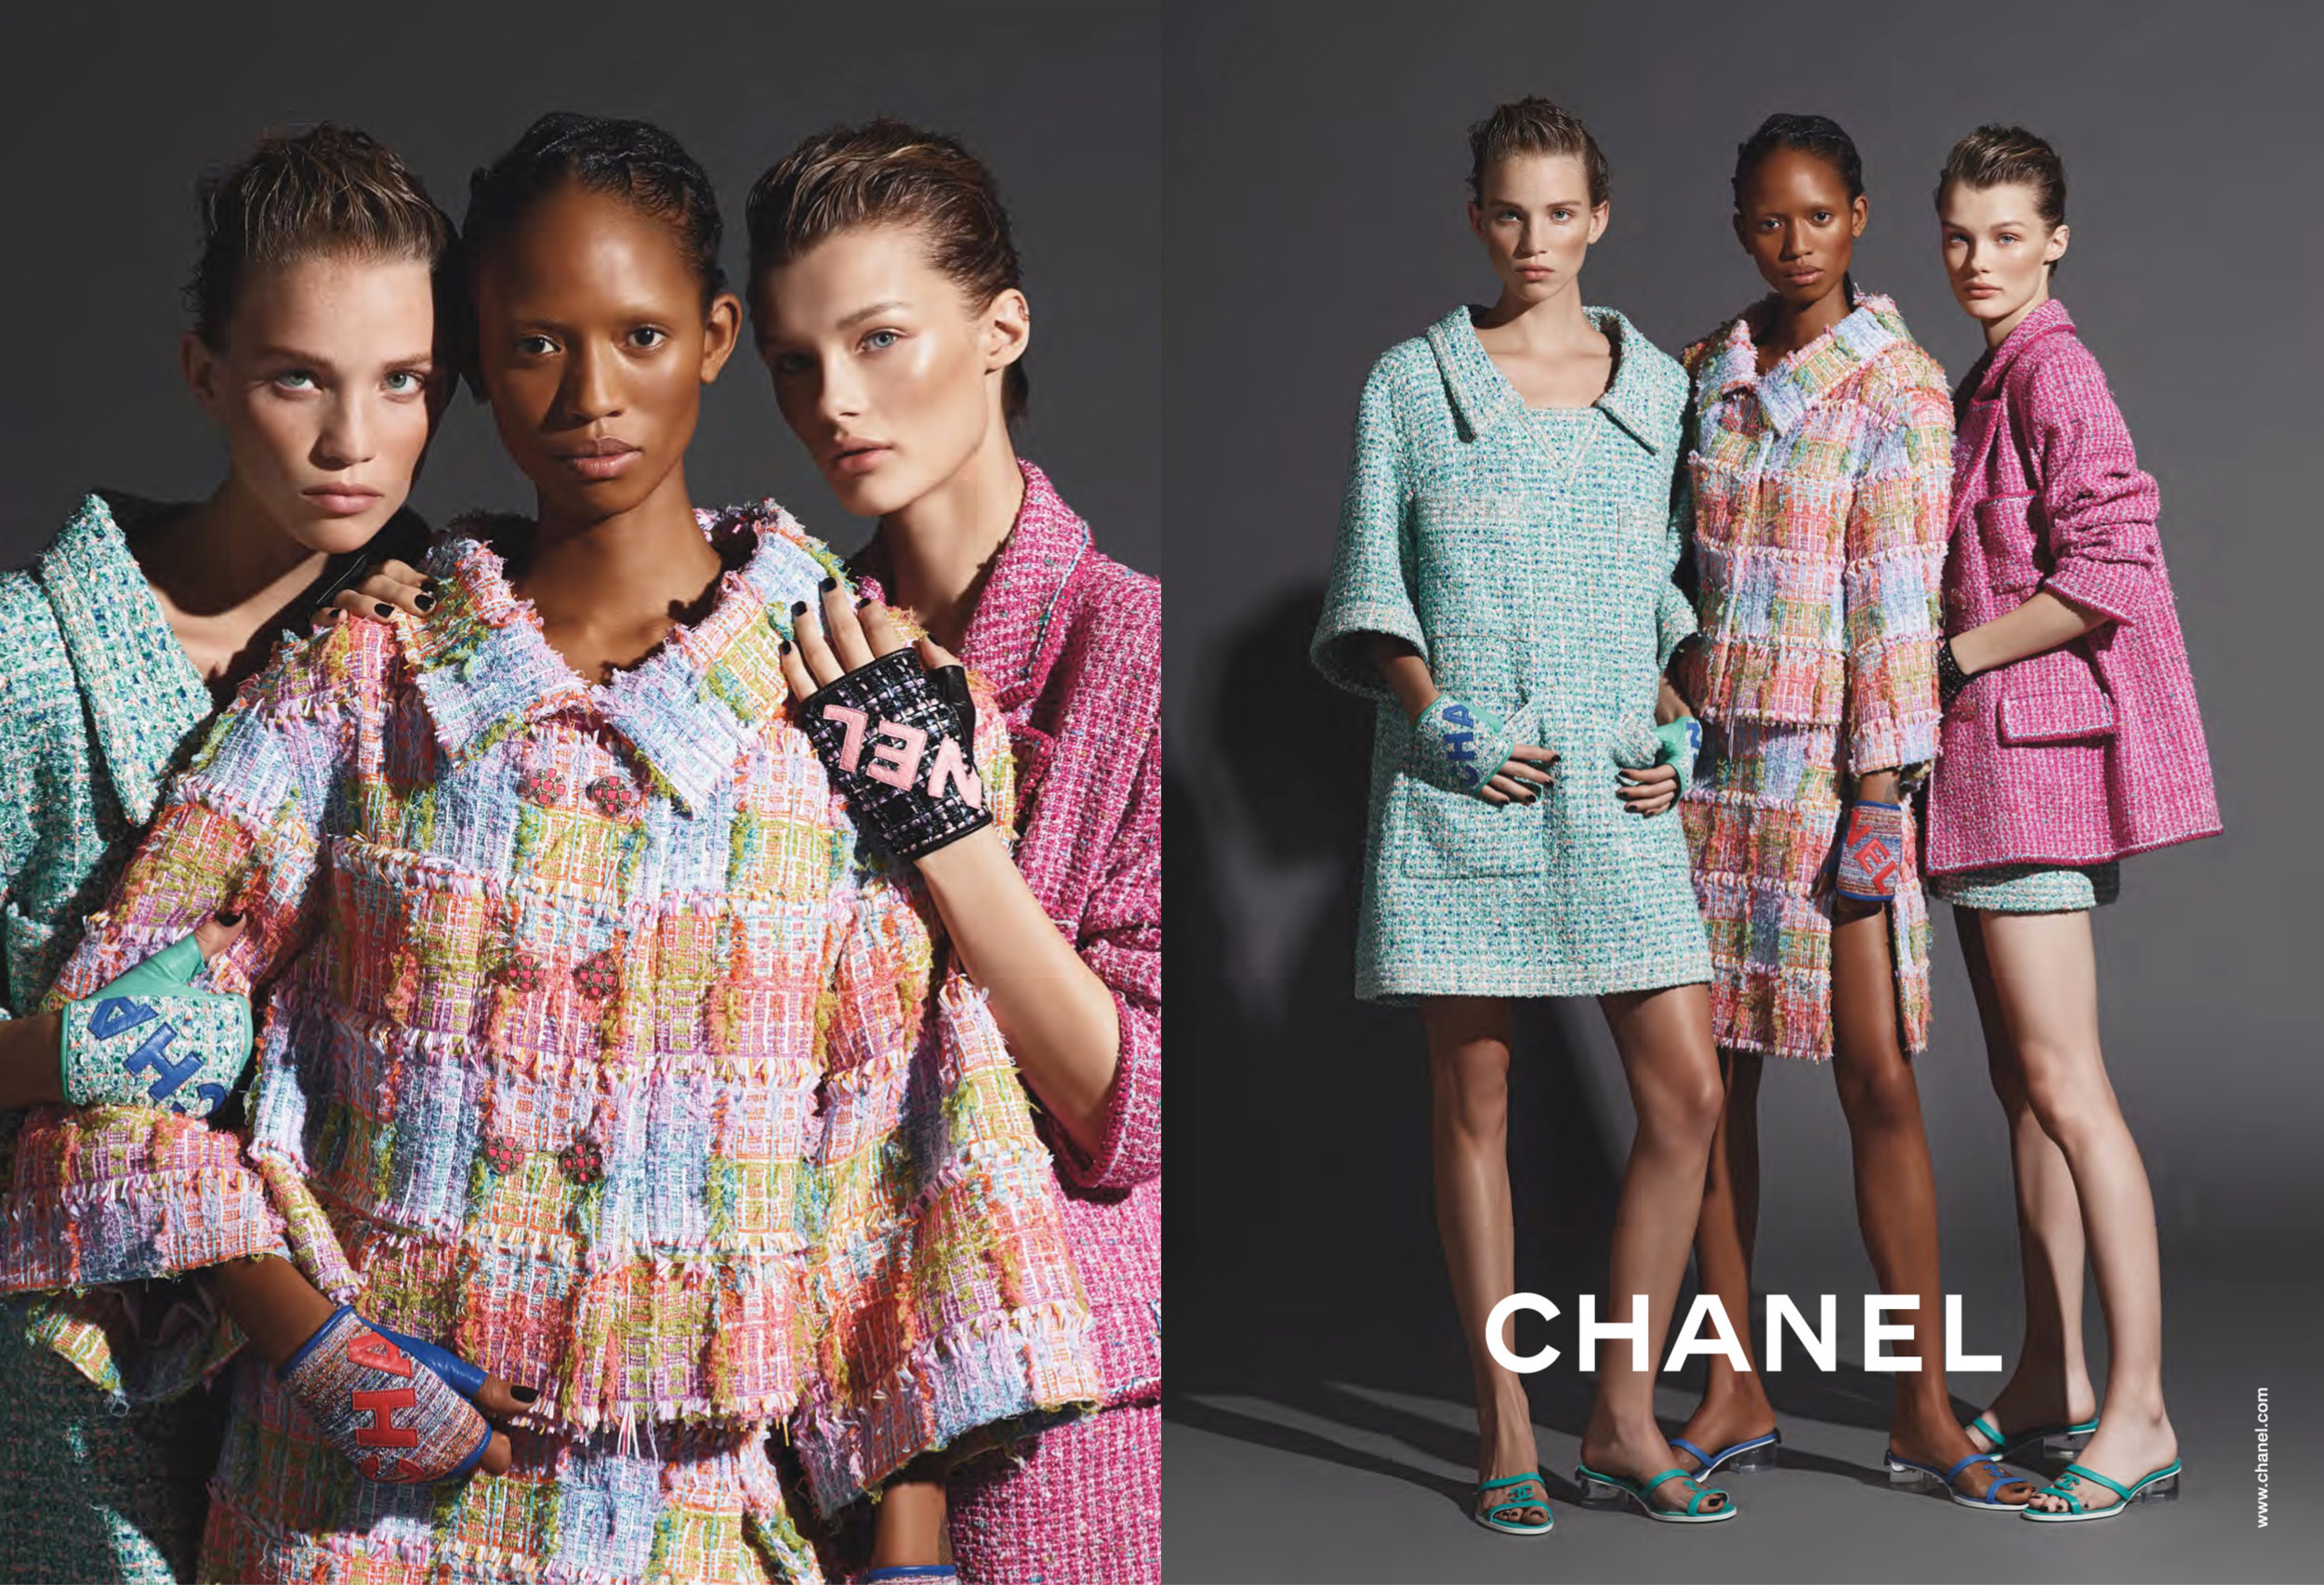 chanel_spring_2019_campaign9.jpg